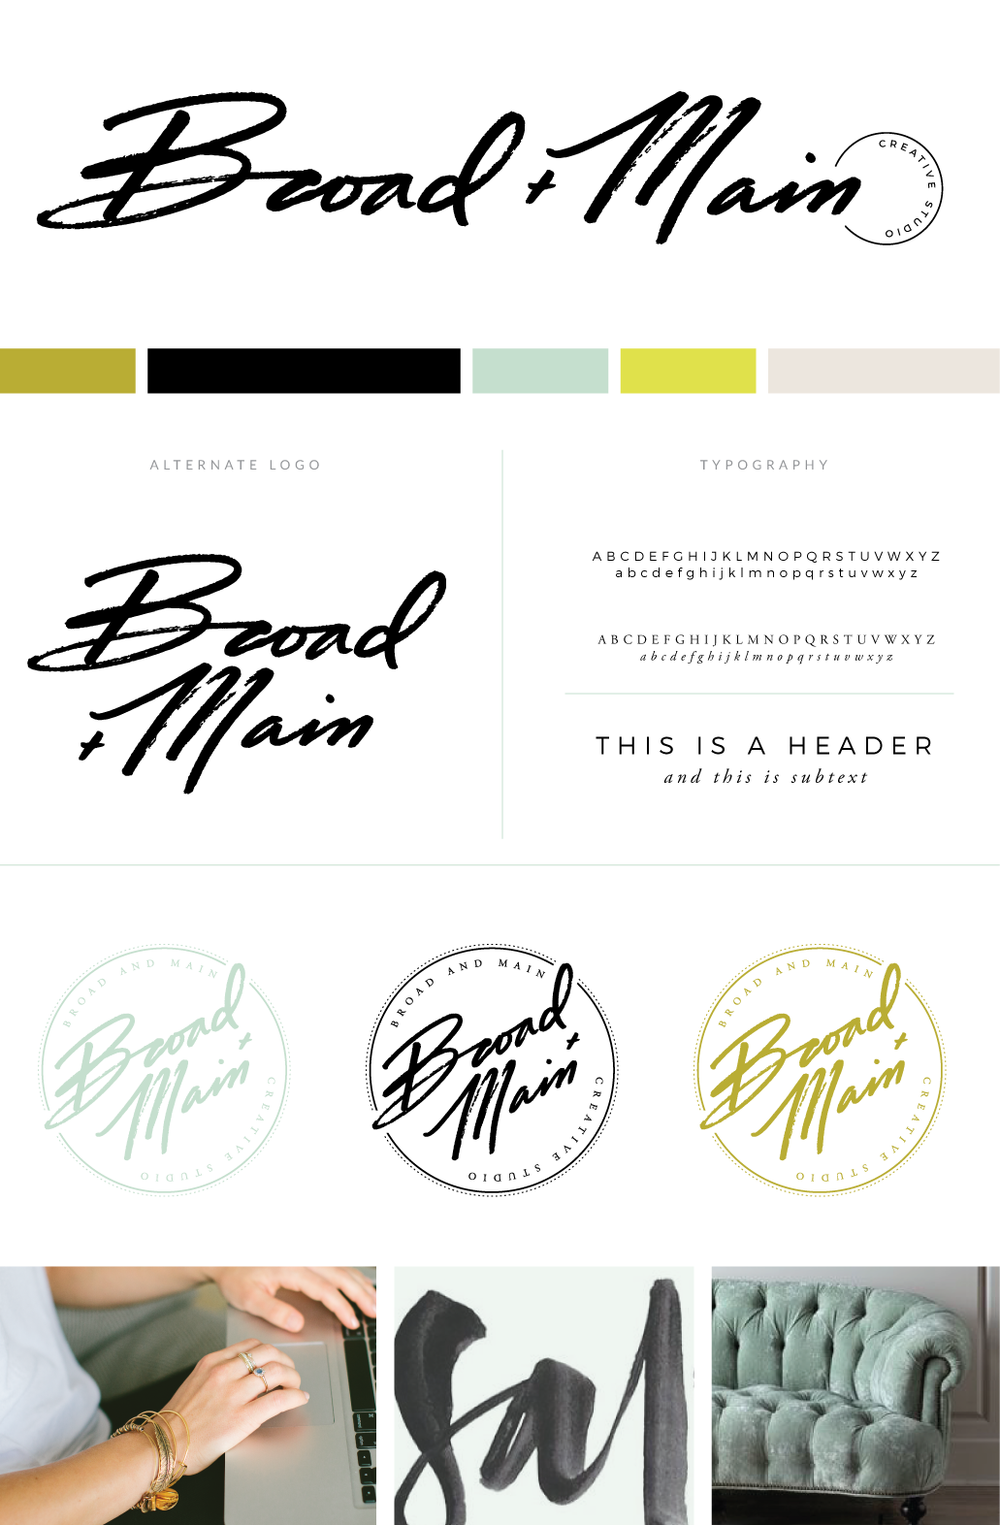 Broad + Main Branding and Design